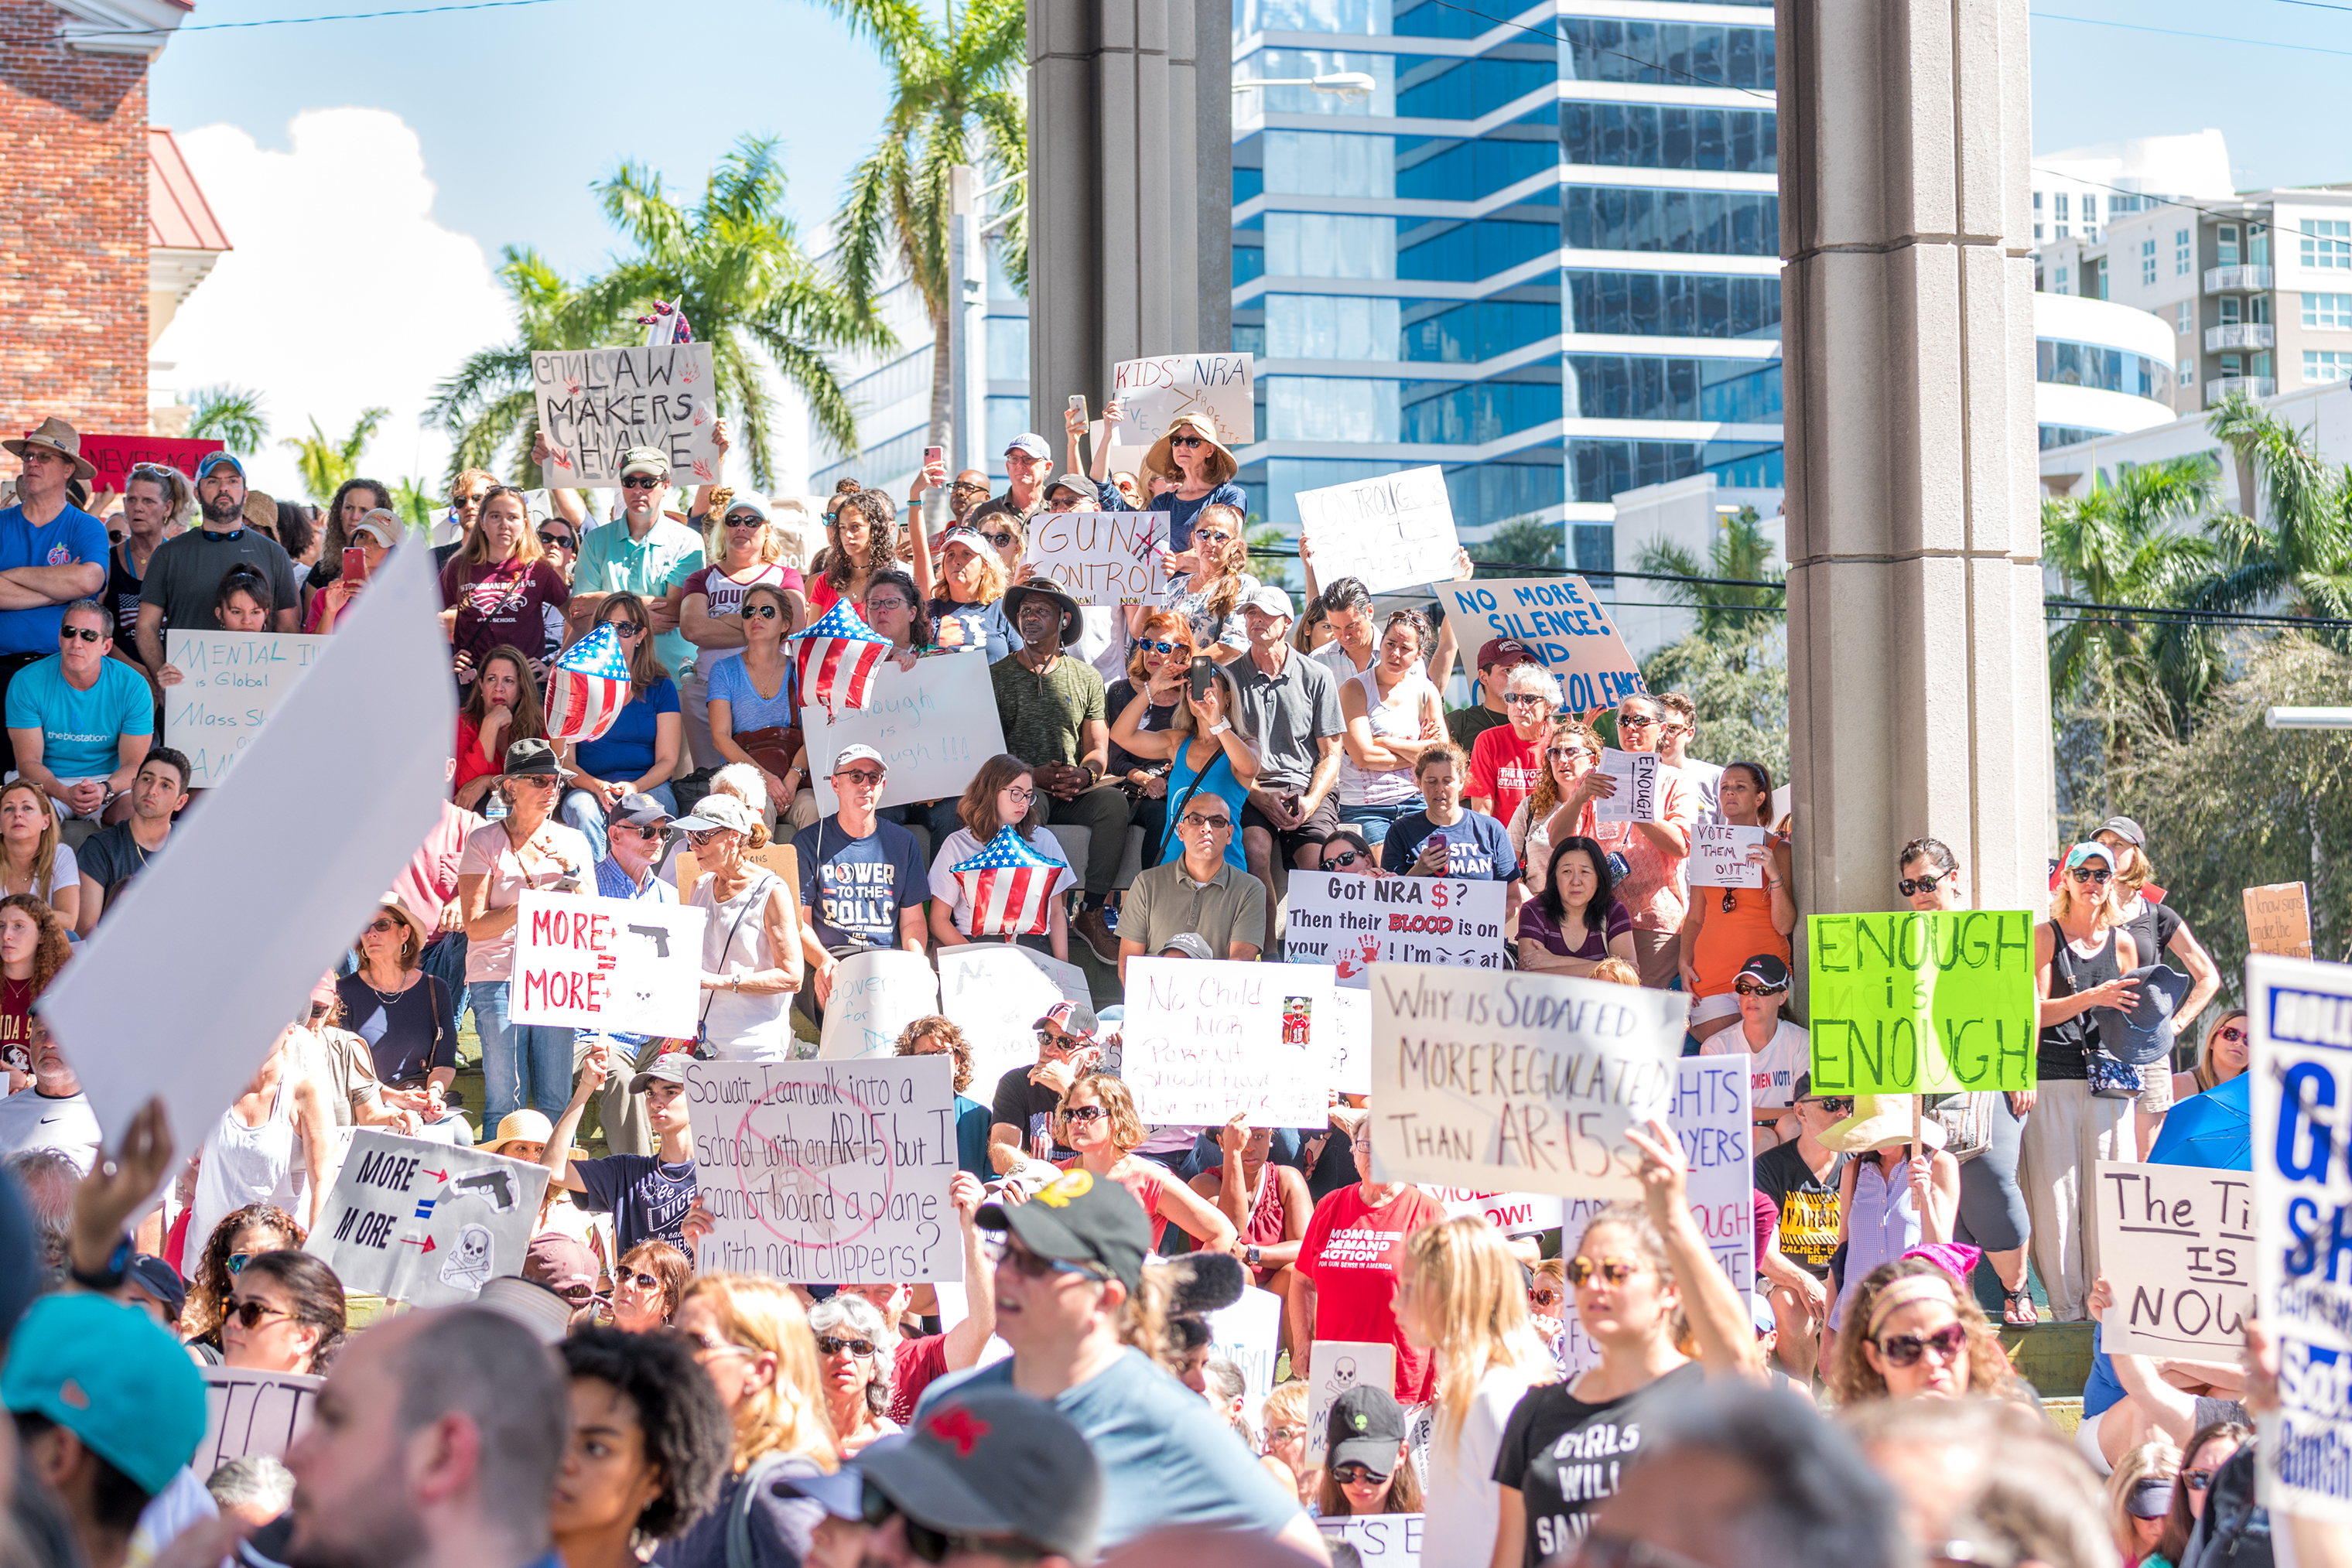 A Feb. 17 rally for gun control, held in Fort Lauderdale three days after the Parkland shooting, drew a crowd of thousands.